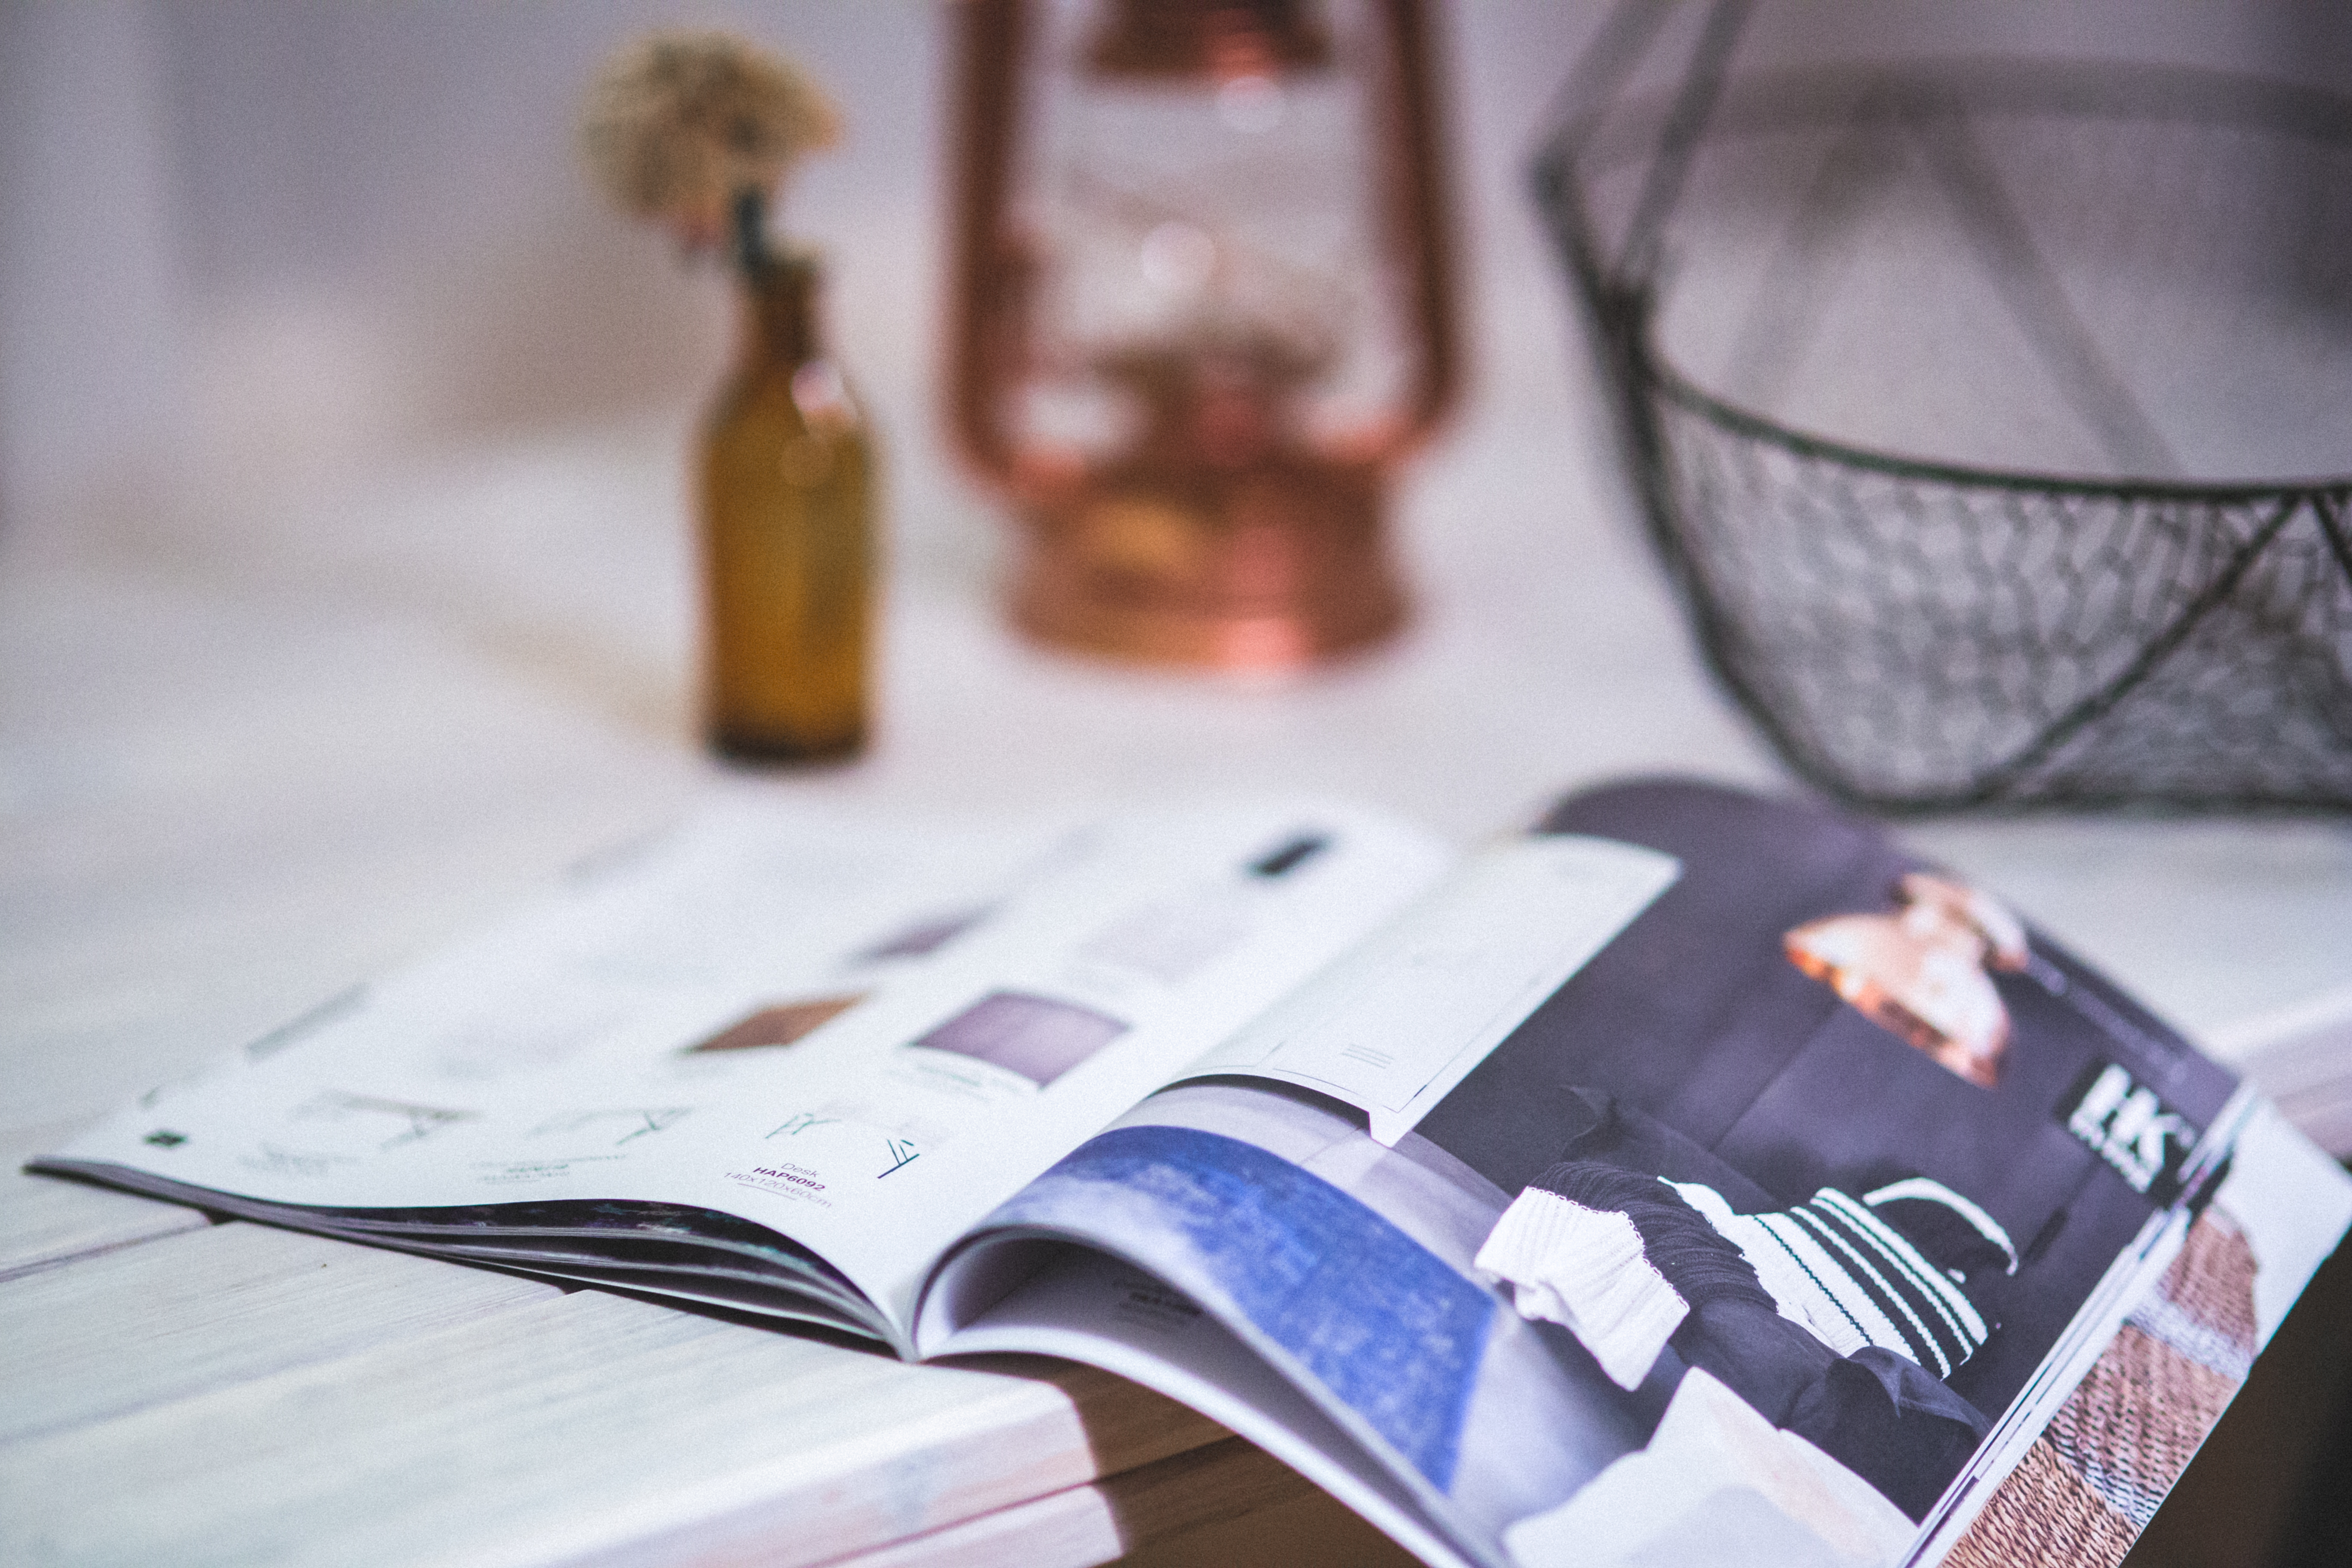 Print Catalogs: Taking the Men's Fashion World by Storm